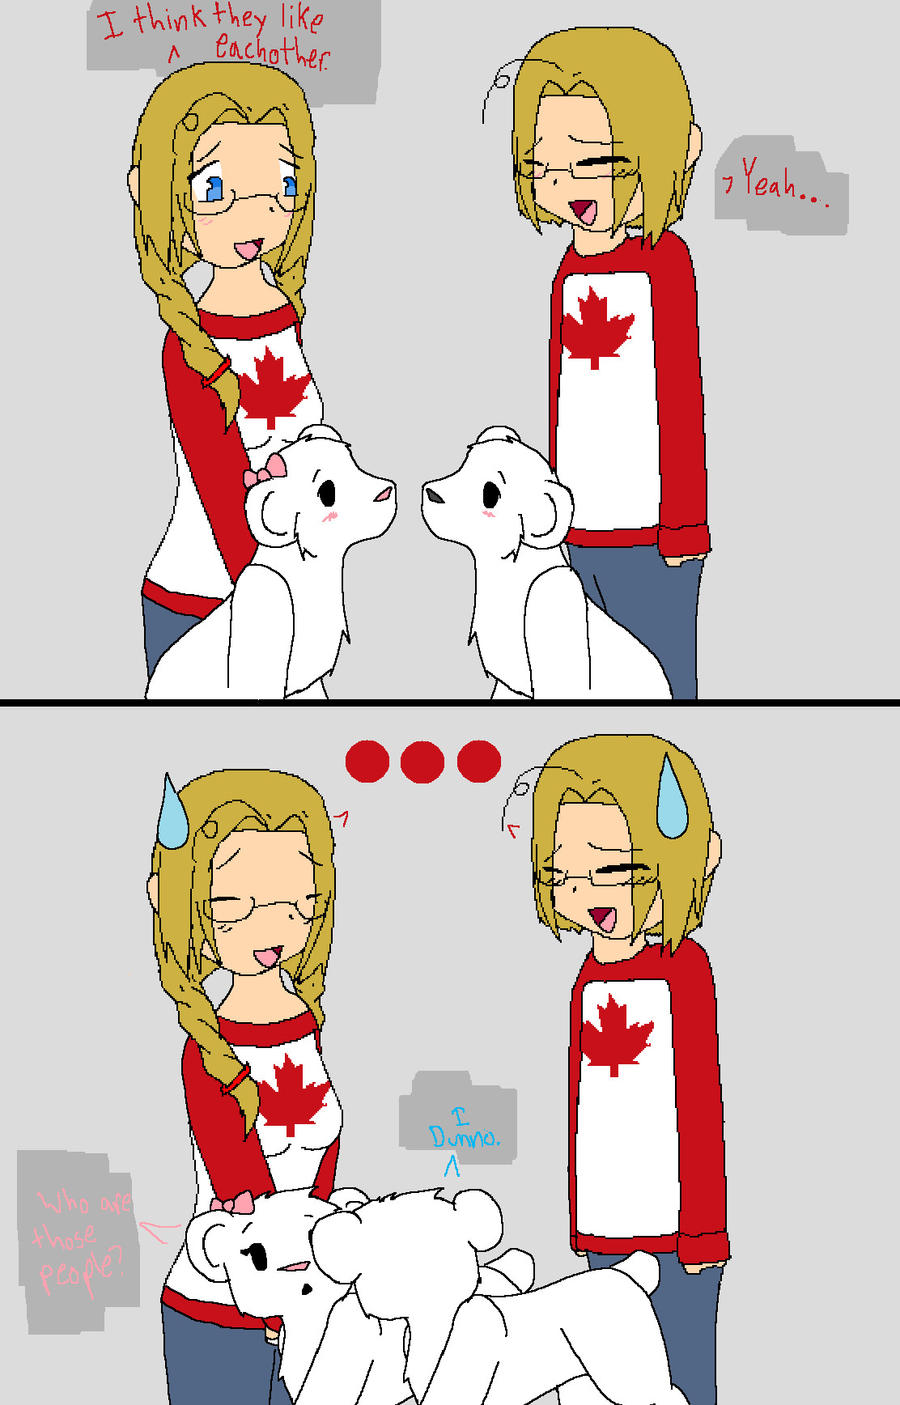 Canada and fem canada comic by scopesam on deviantart canada and fem canada comic by scopesam thecheapjerseys Choice Image